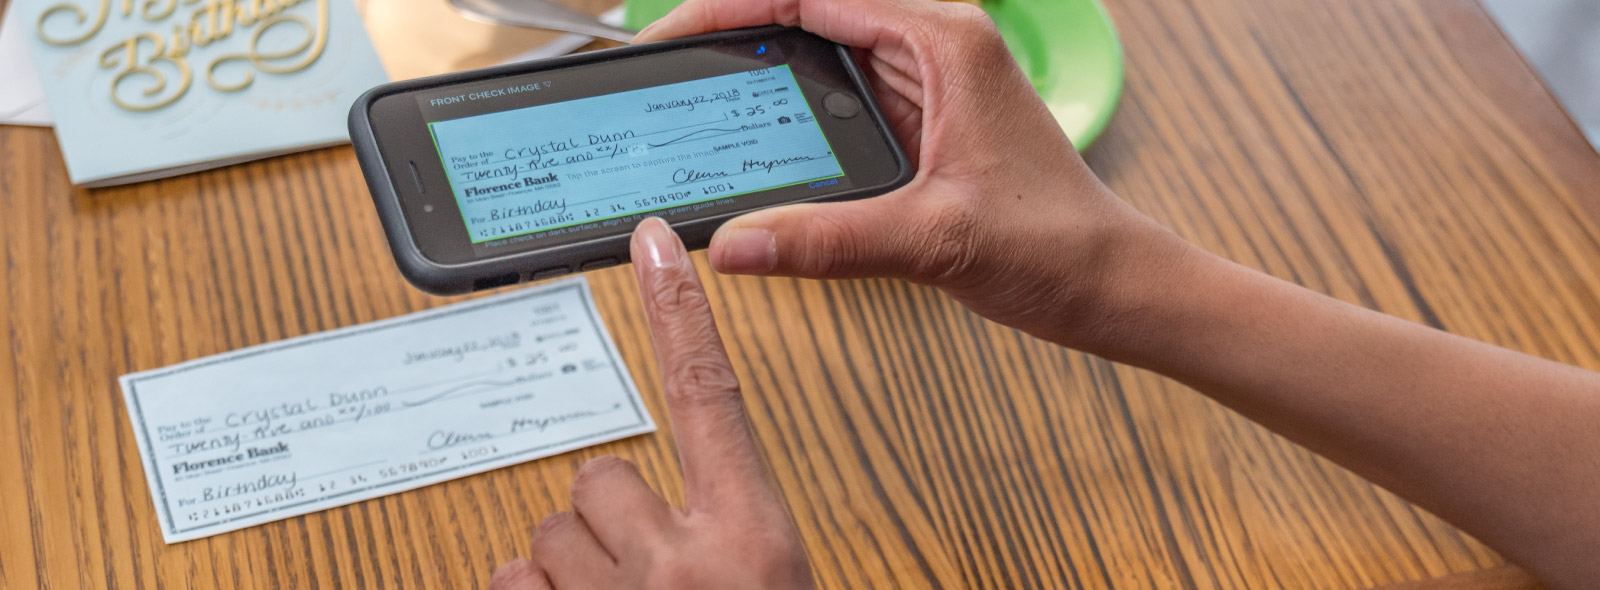 Mobile deposit capturing a check image on mobile device.